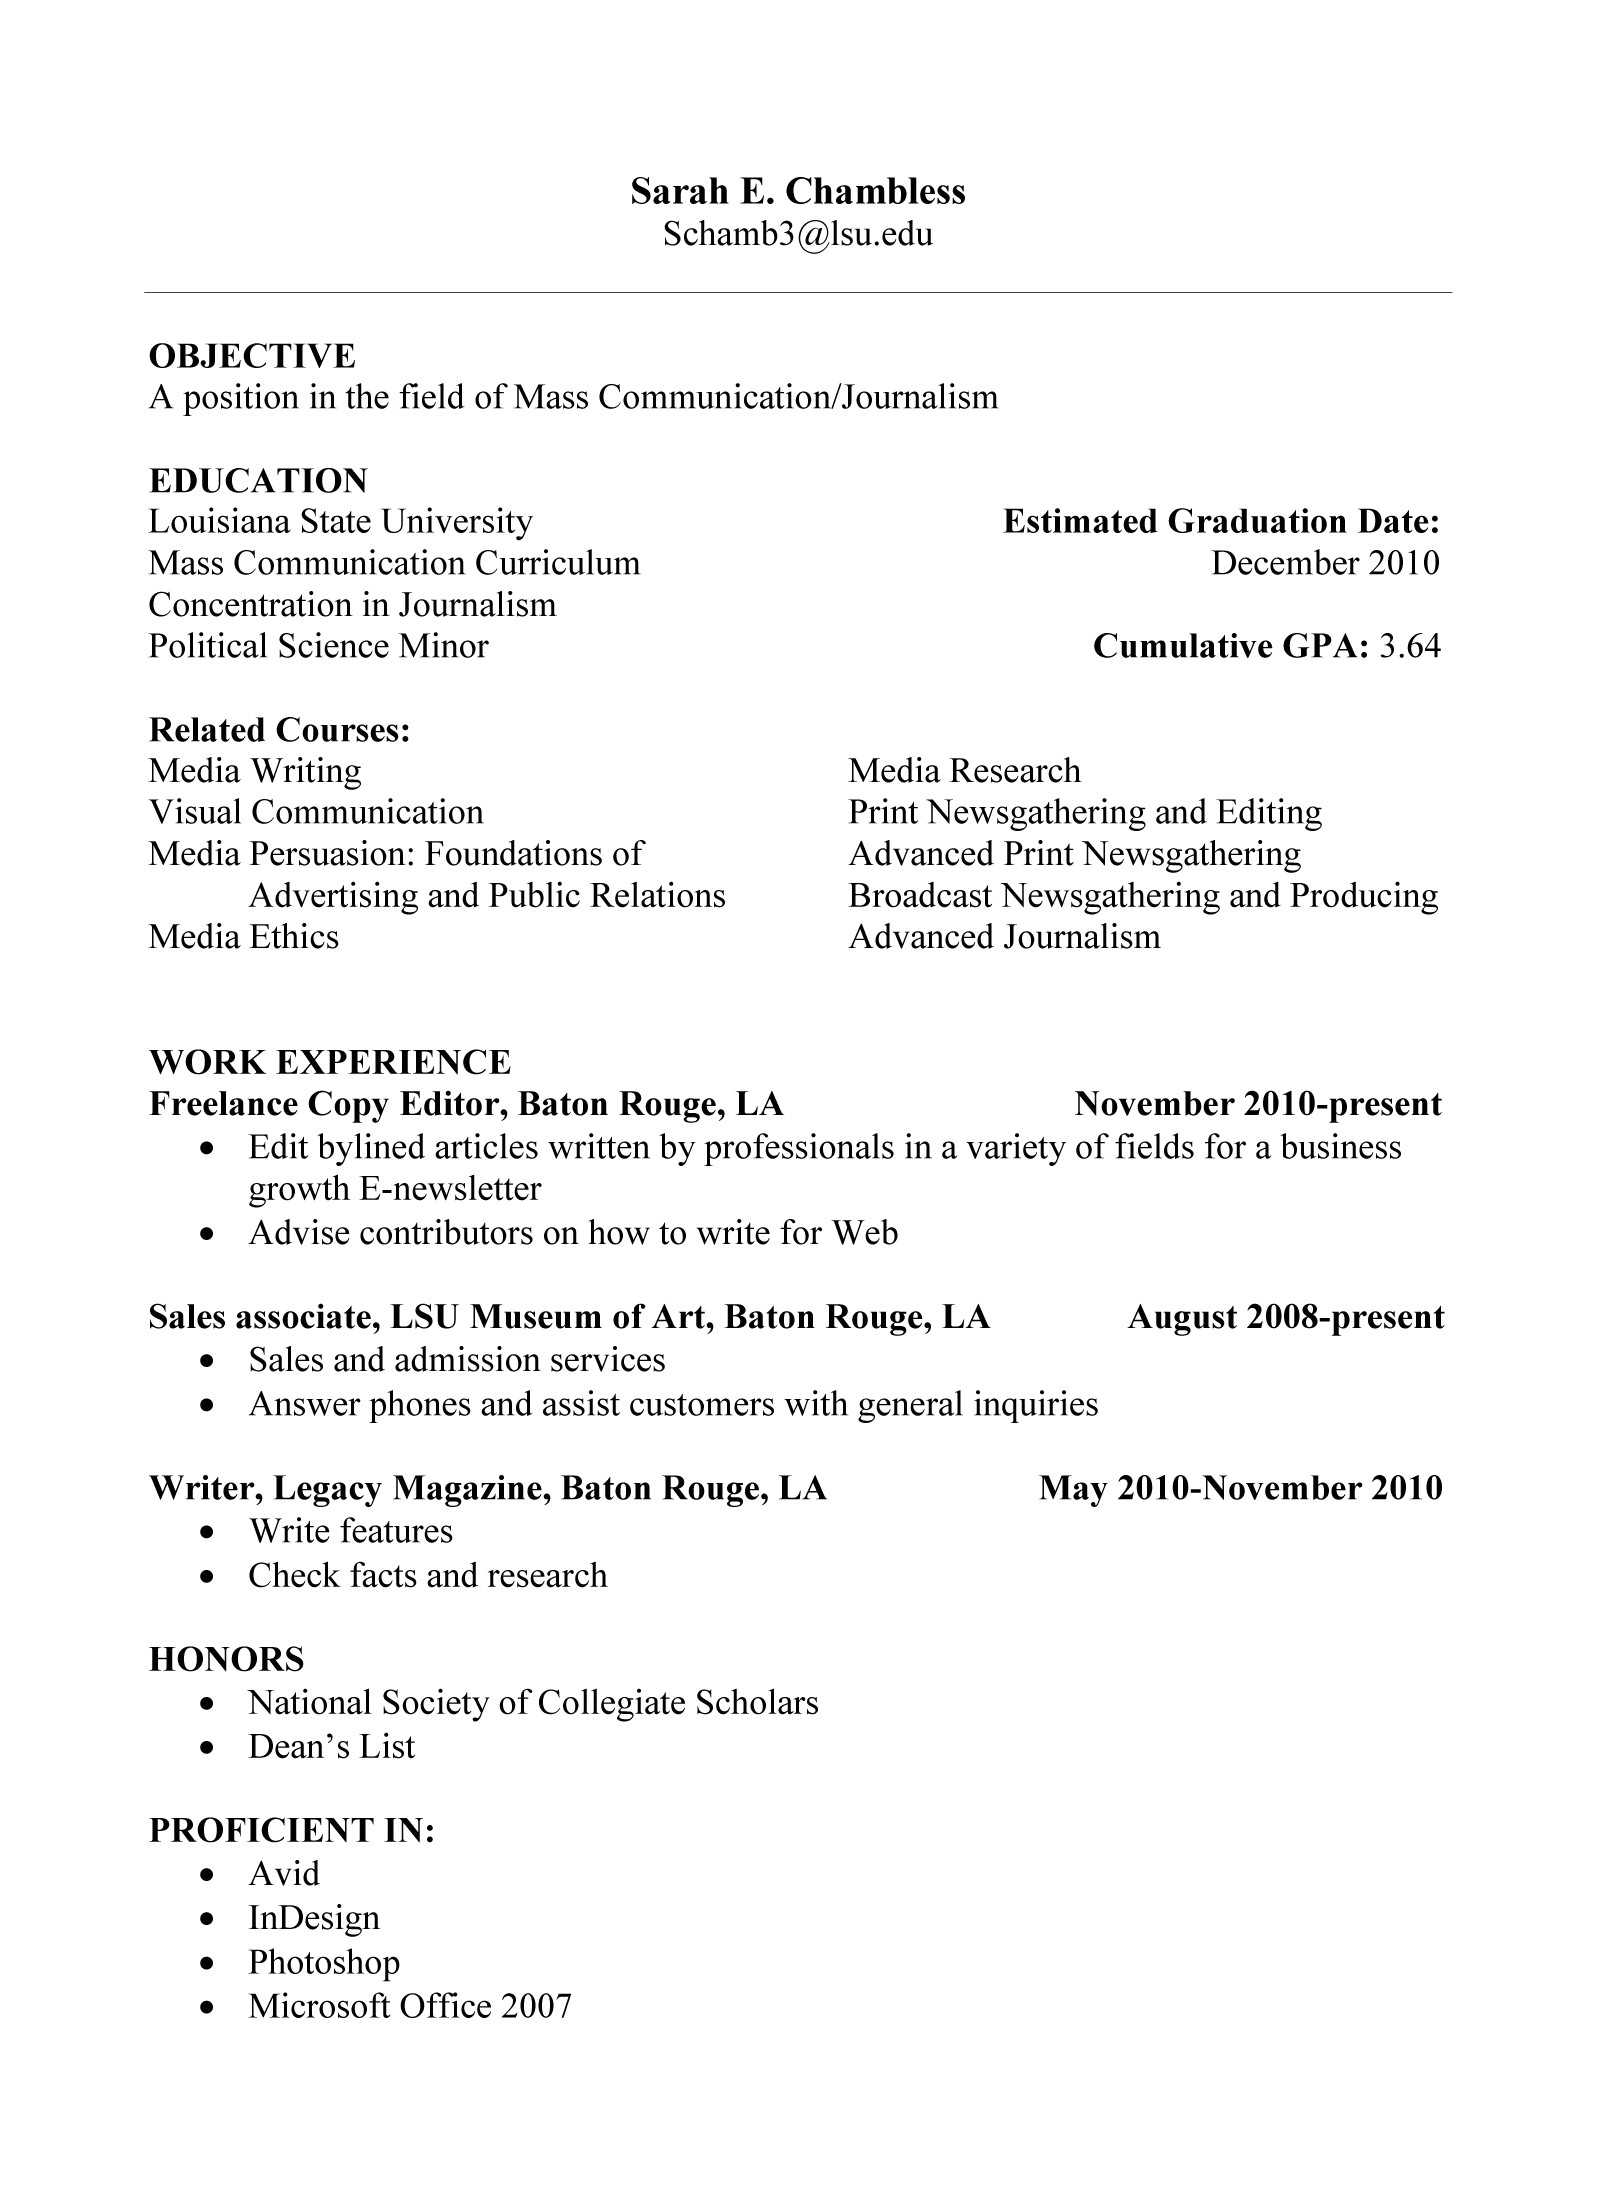 resume for inexperienced high school student